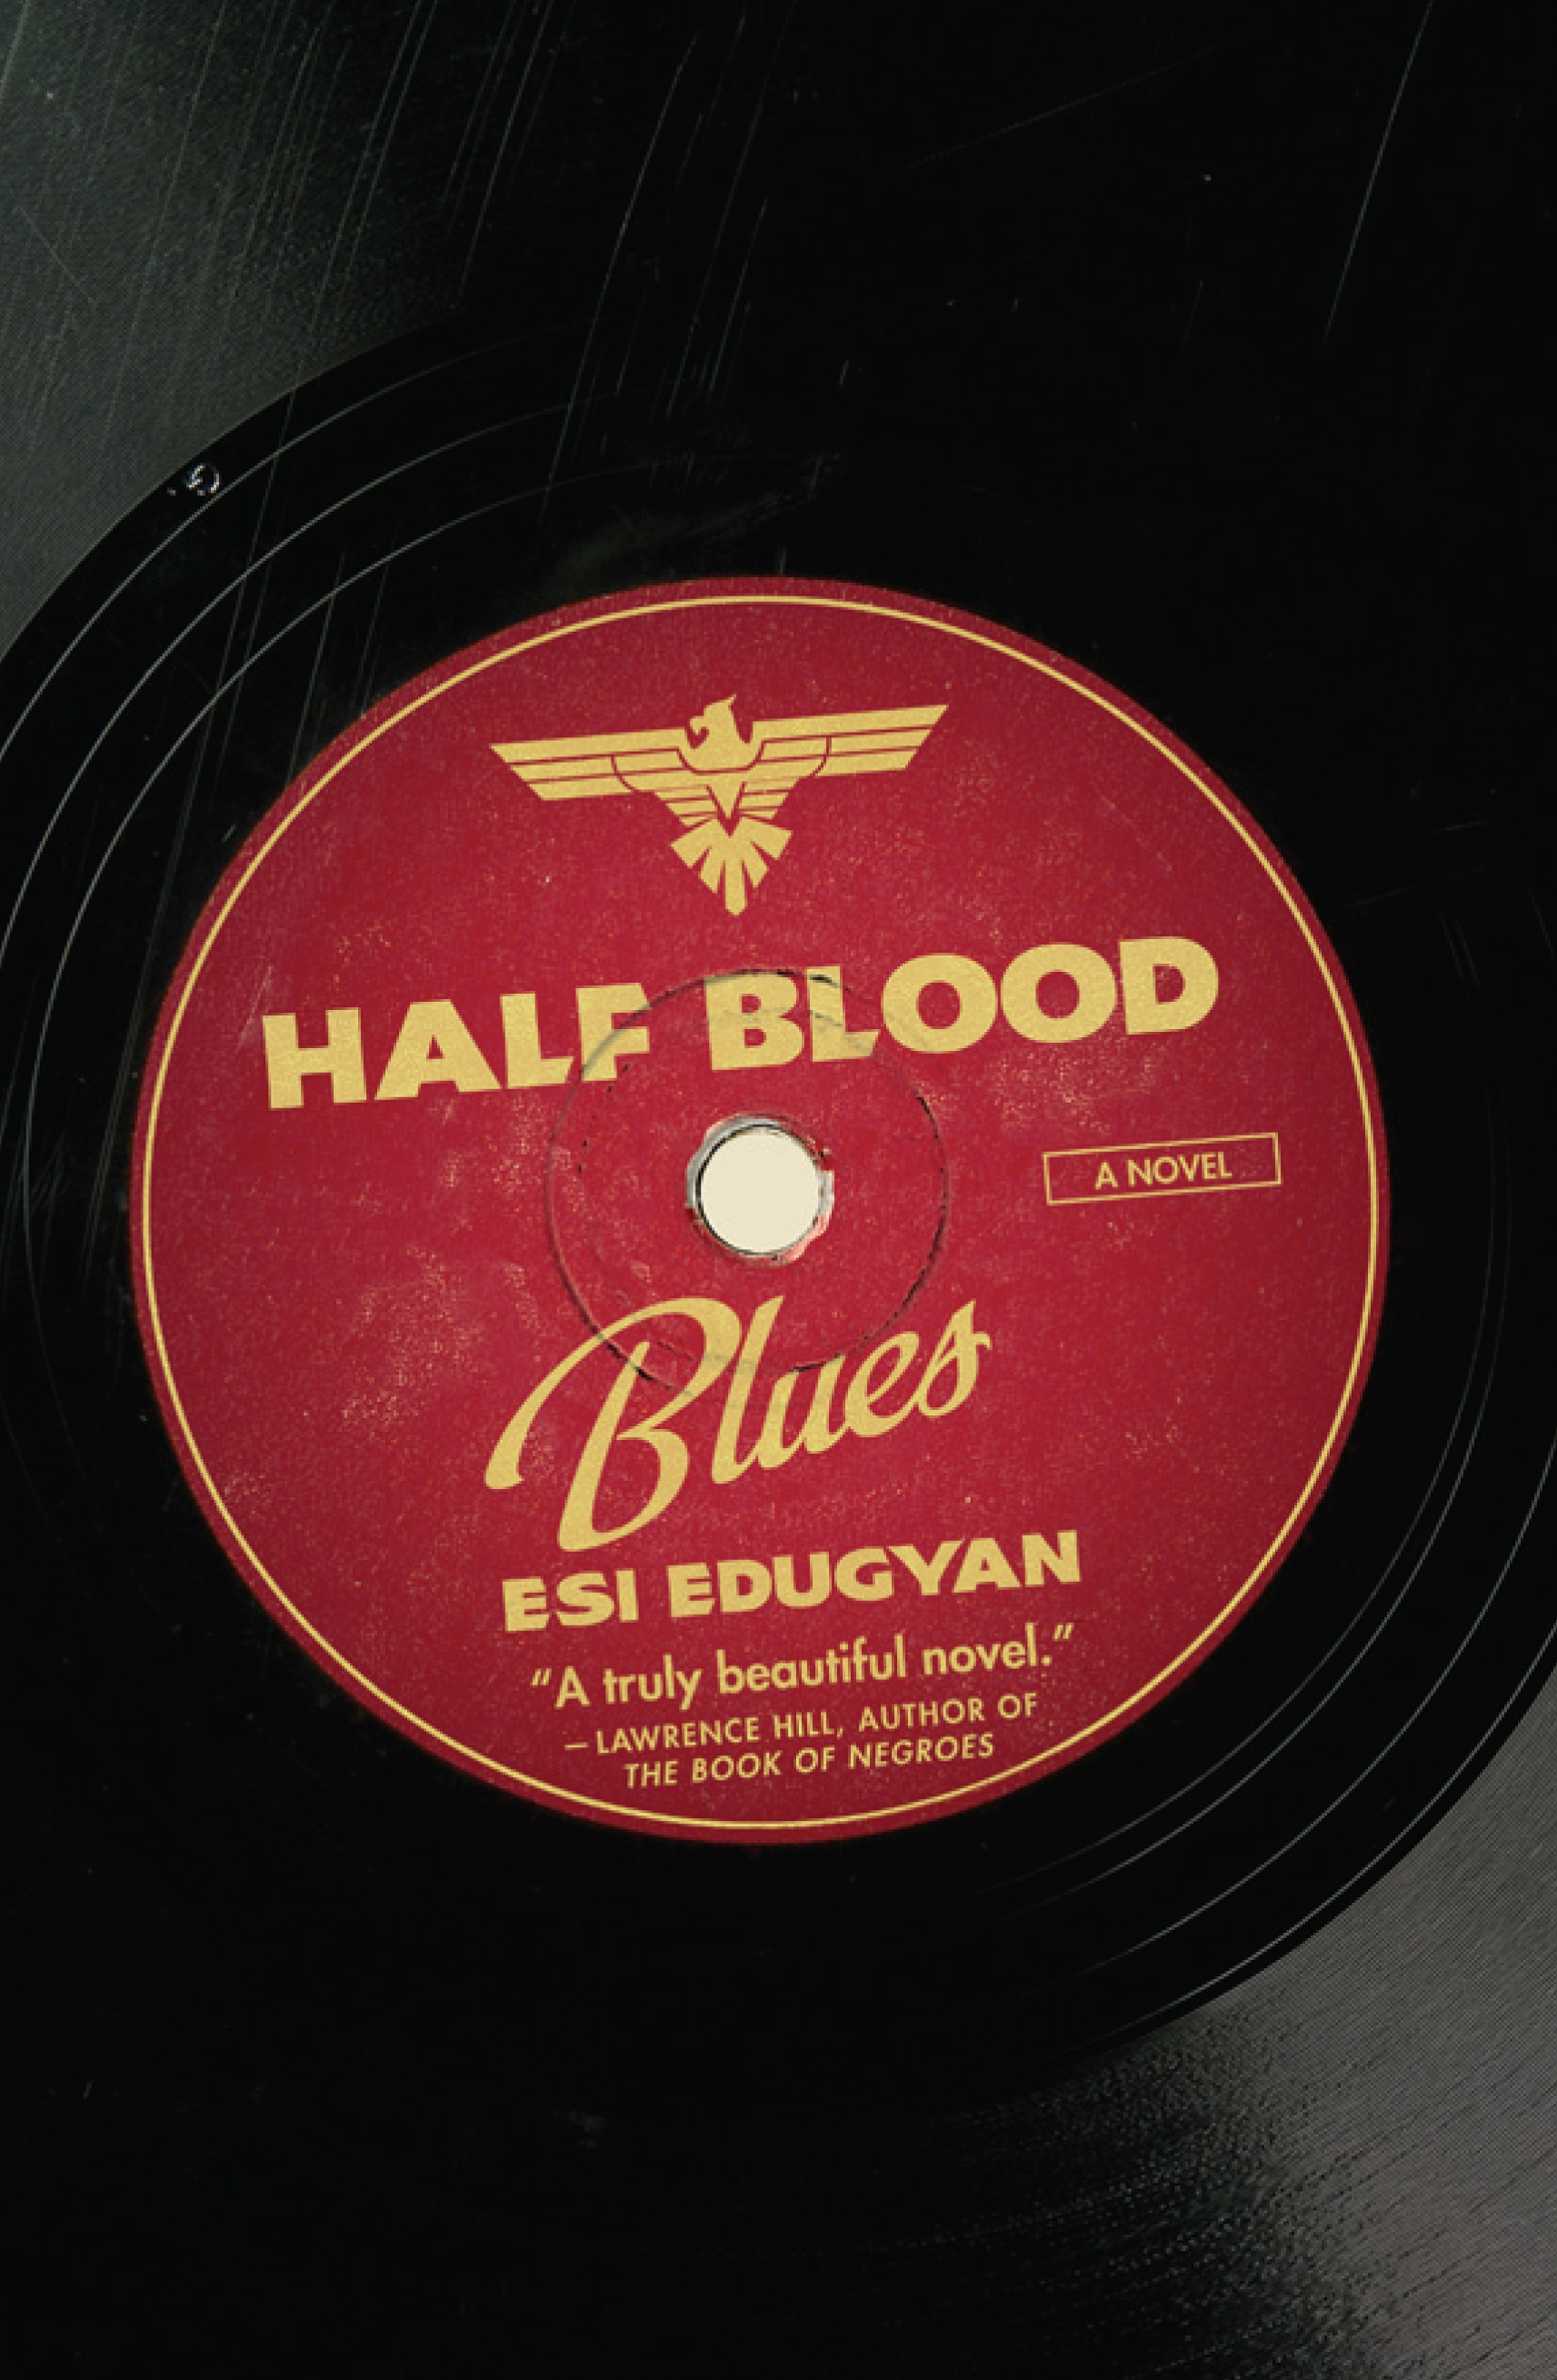 Half-Blood Blues by Esi Edugyan HarperCollins Publishing 320 pages